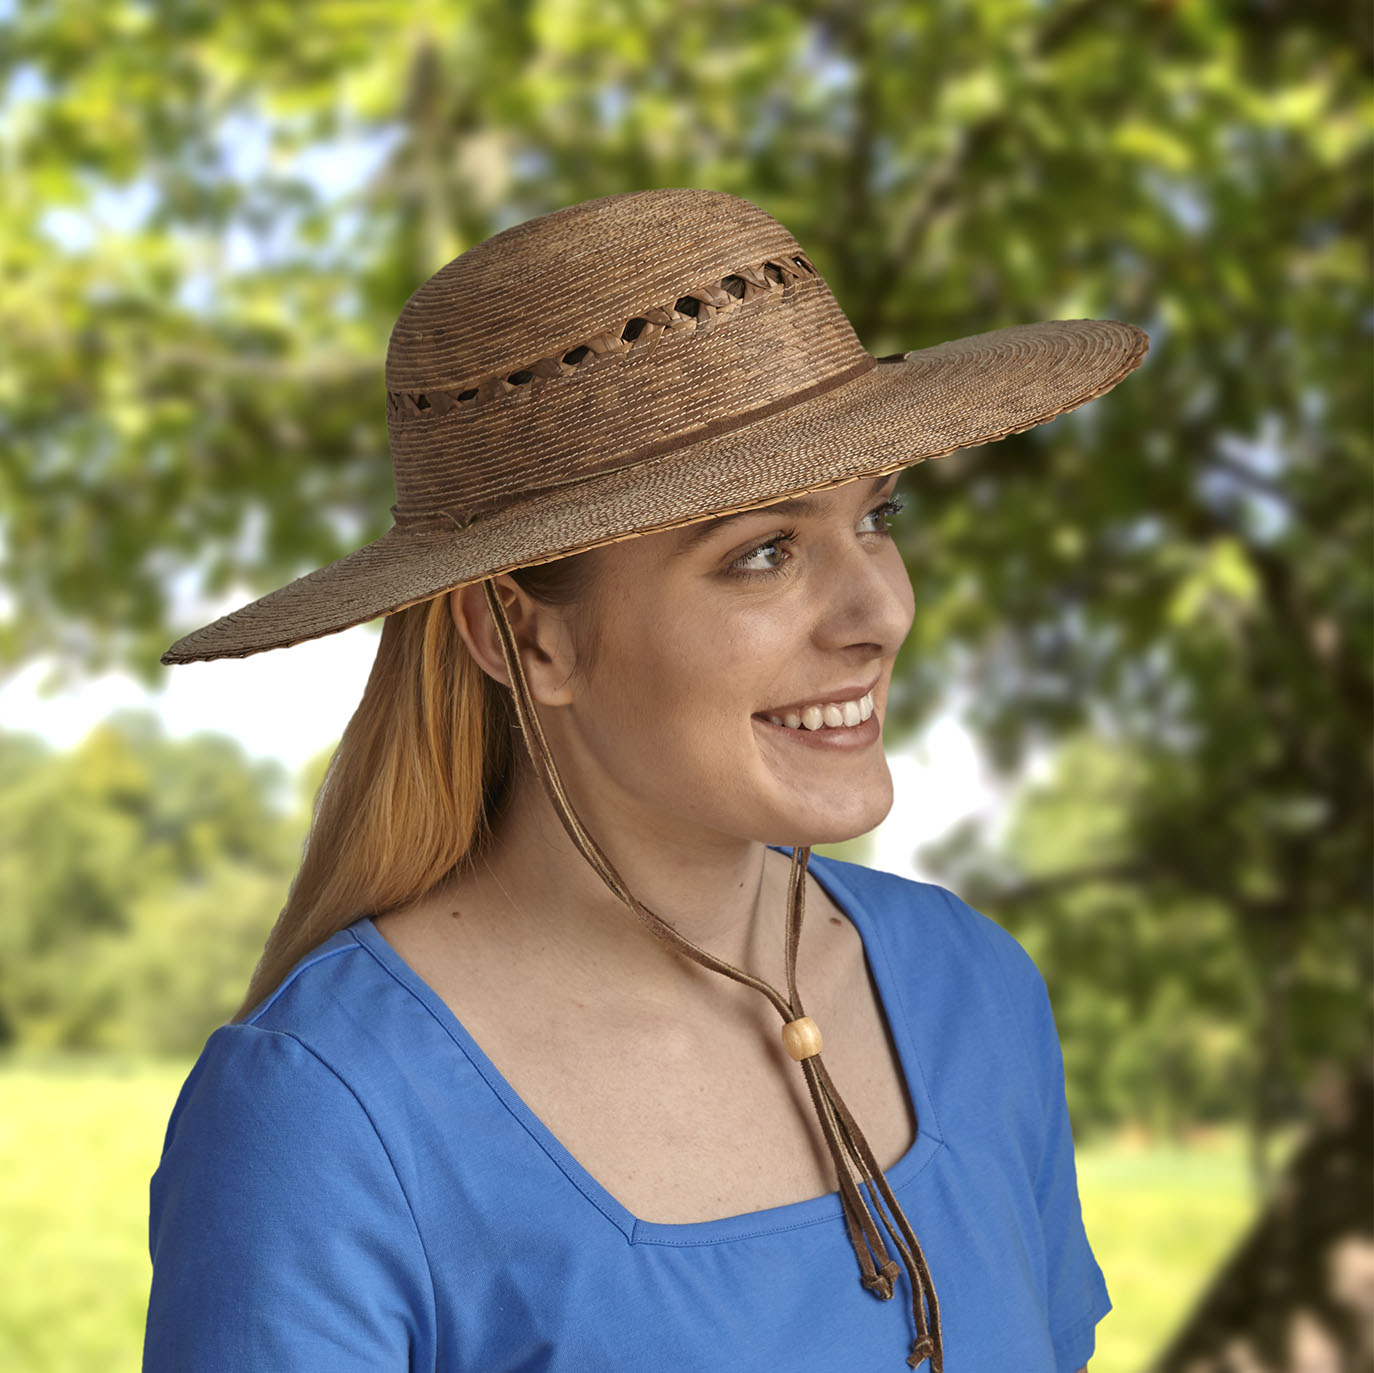 Award-winning Gardening Hat offers 50+ UPF sun protection.